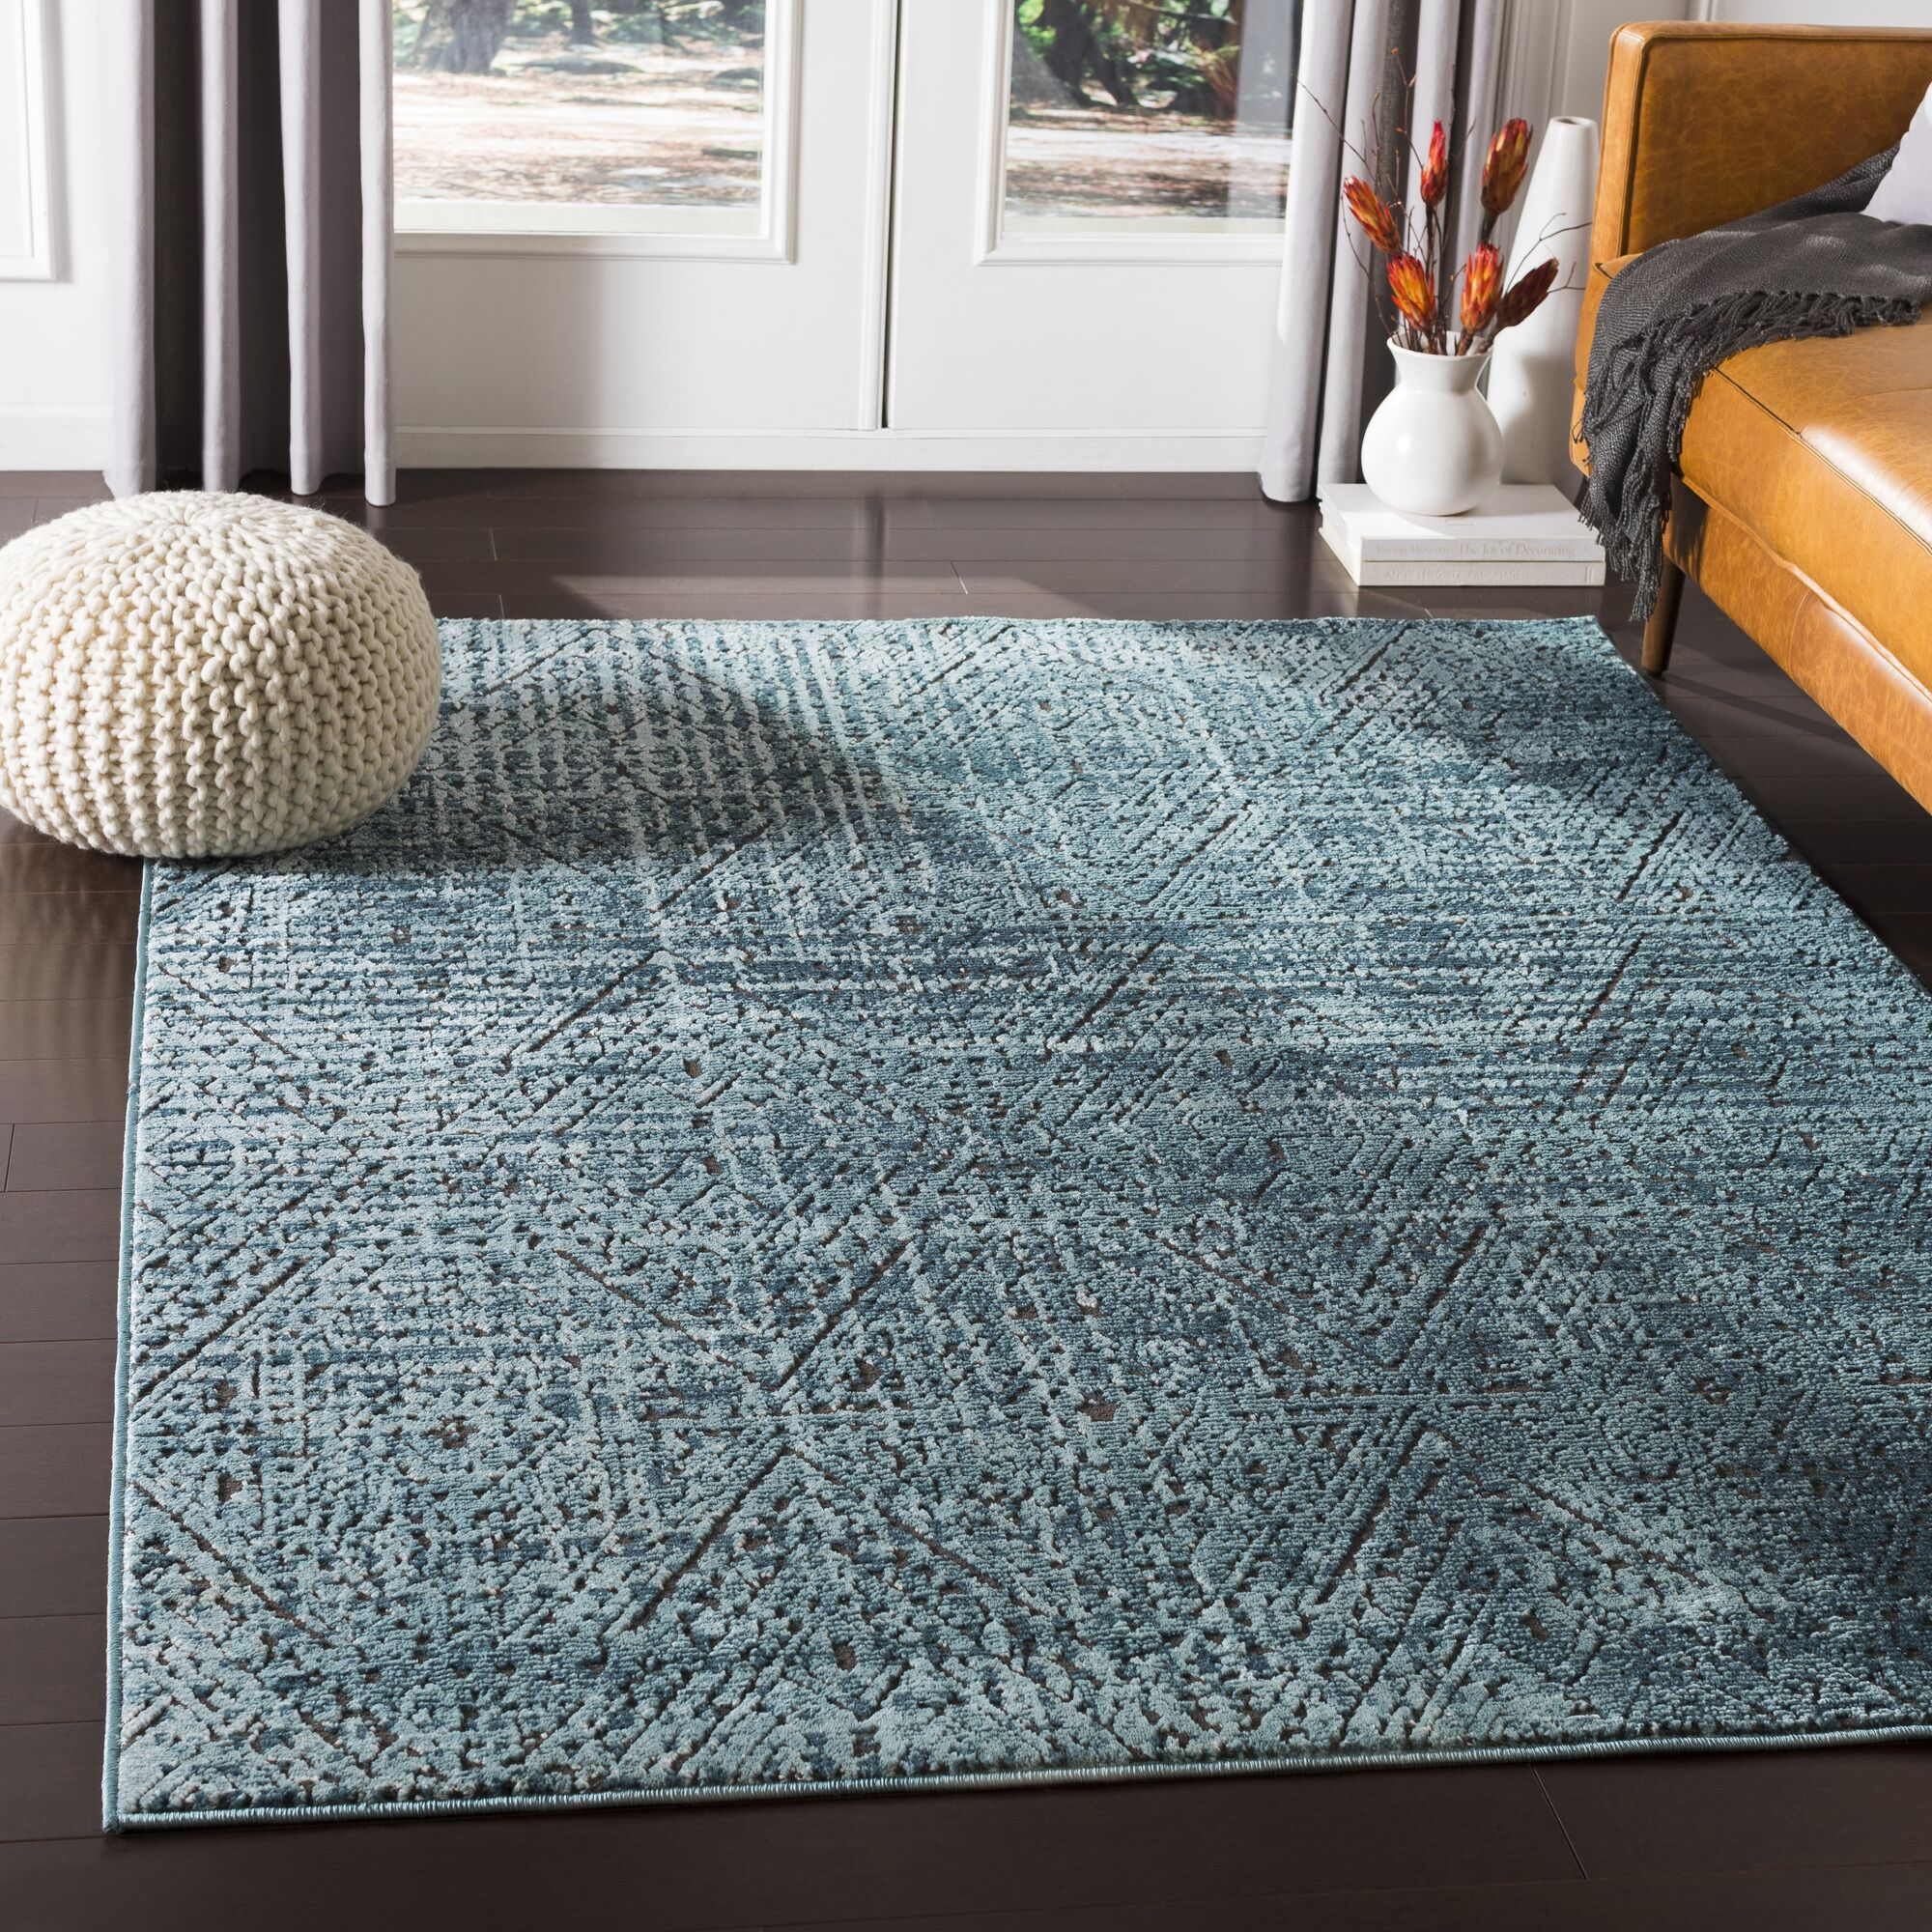 Quinlan Distressed Geometric Teal Area Rug Rug Size: Rectangle 3'11